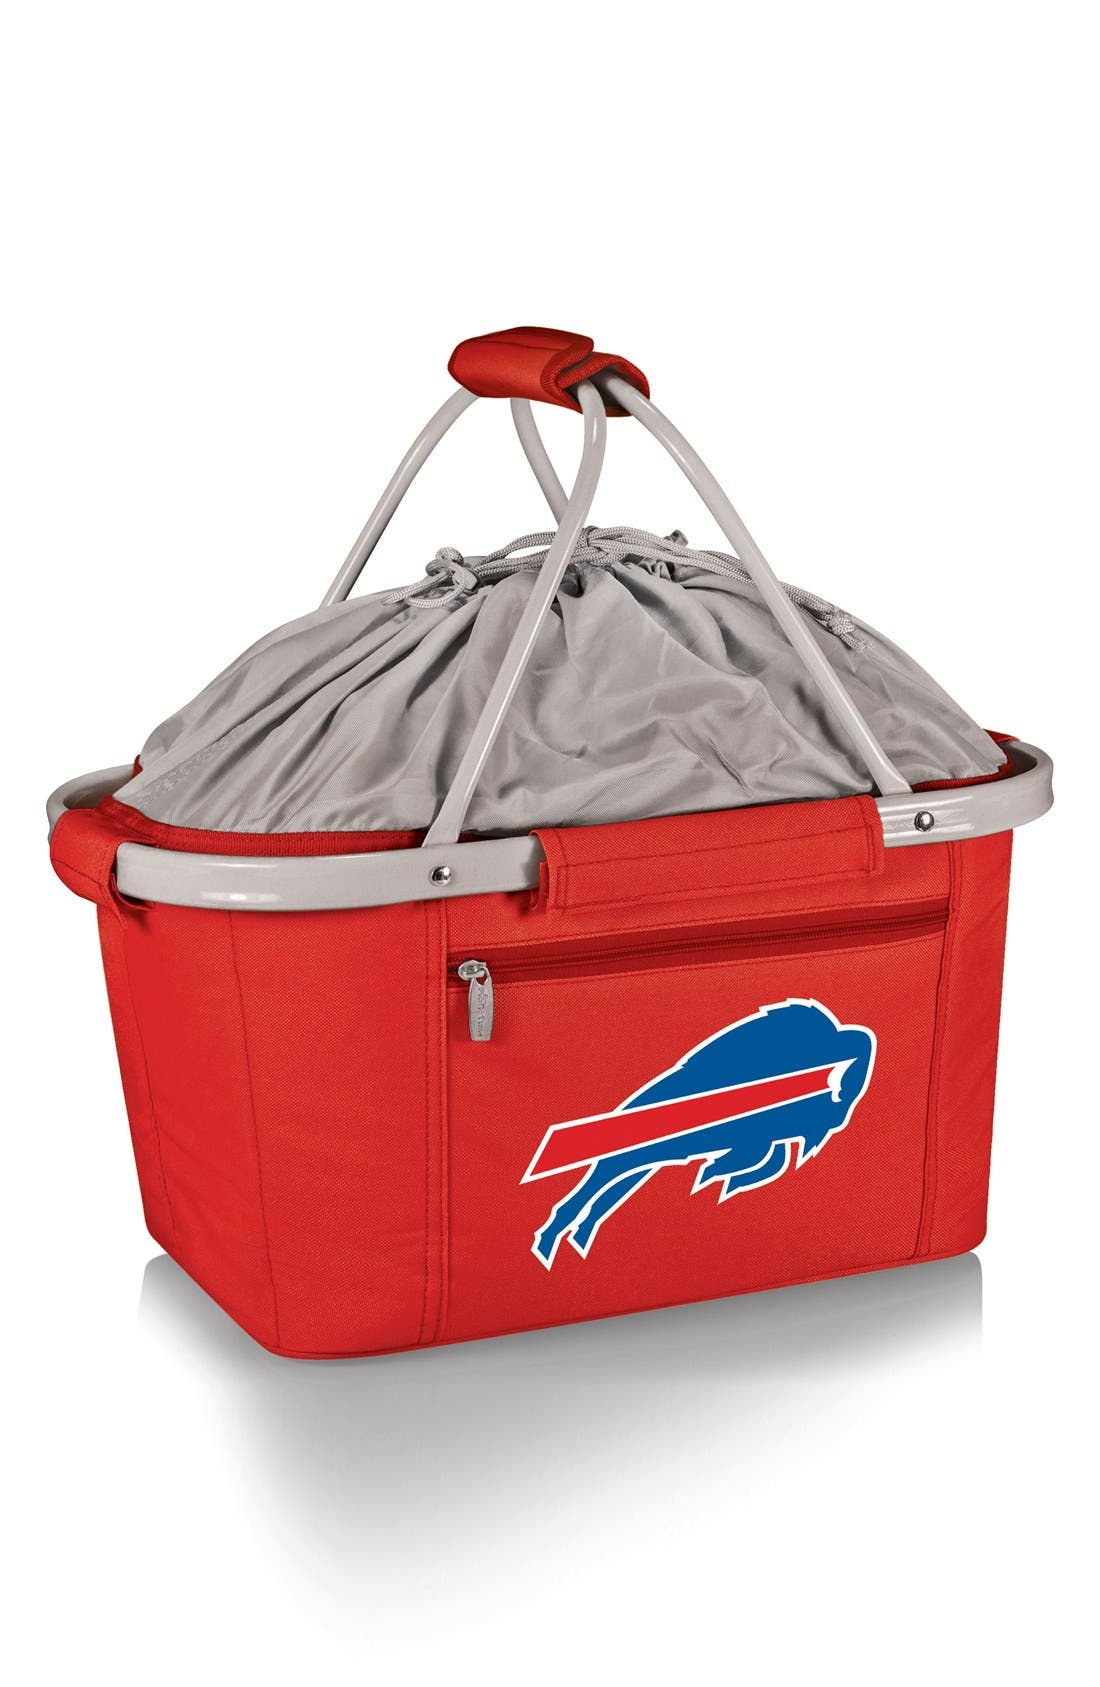 Picnic Time Metro NFL Collapsible Insulated Basket